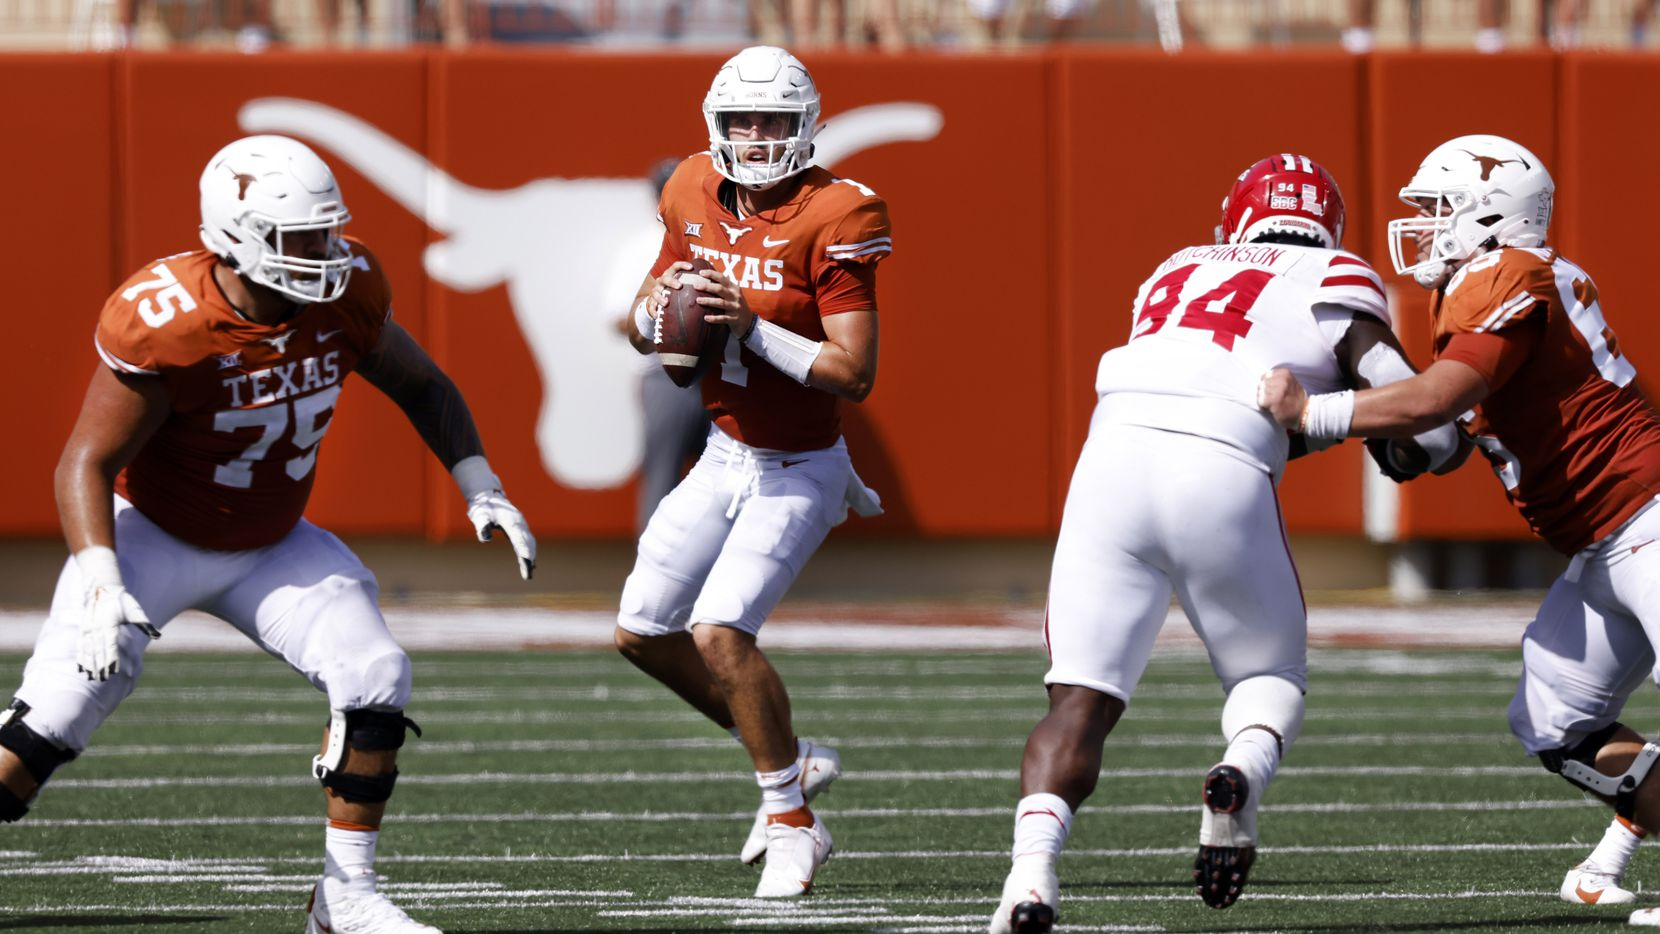 Texas Longhorns quarterback Hudson Card (1) drops back to pass against the Louisiana-Lafayette Ragin Cajuns during the first half at DKR-Texas Memorial Stadium in Austin, Saturday, September 4, 2021.